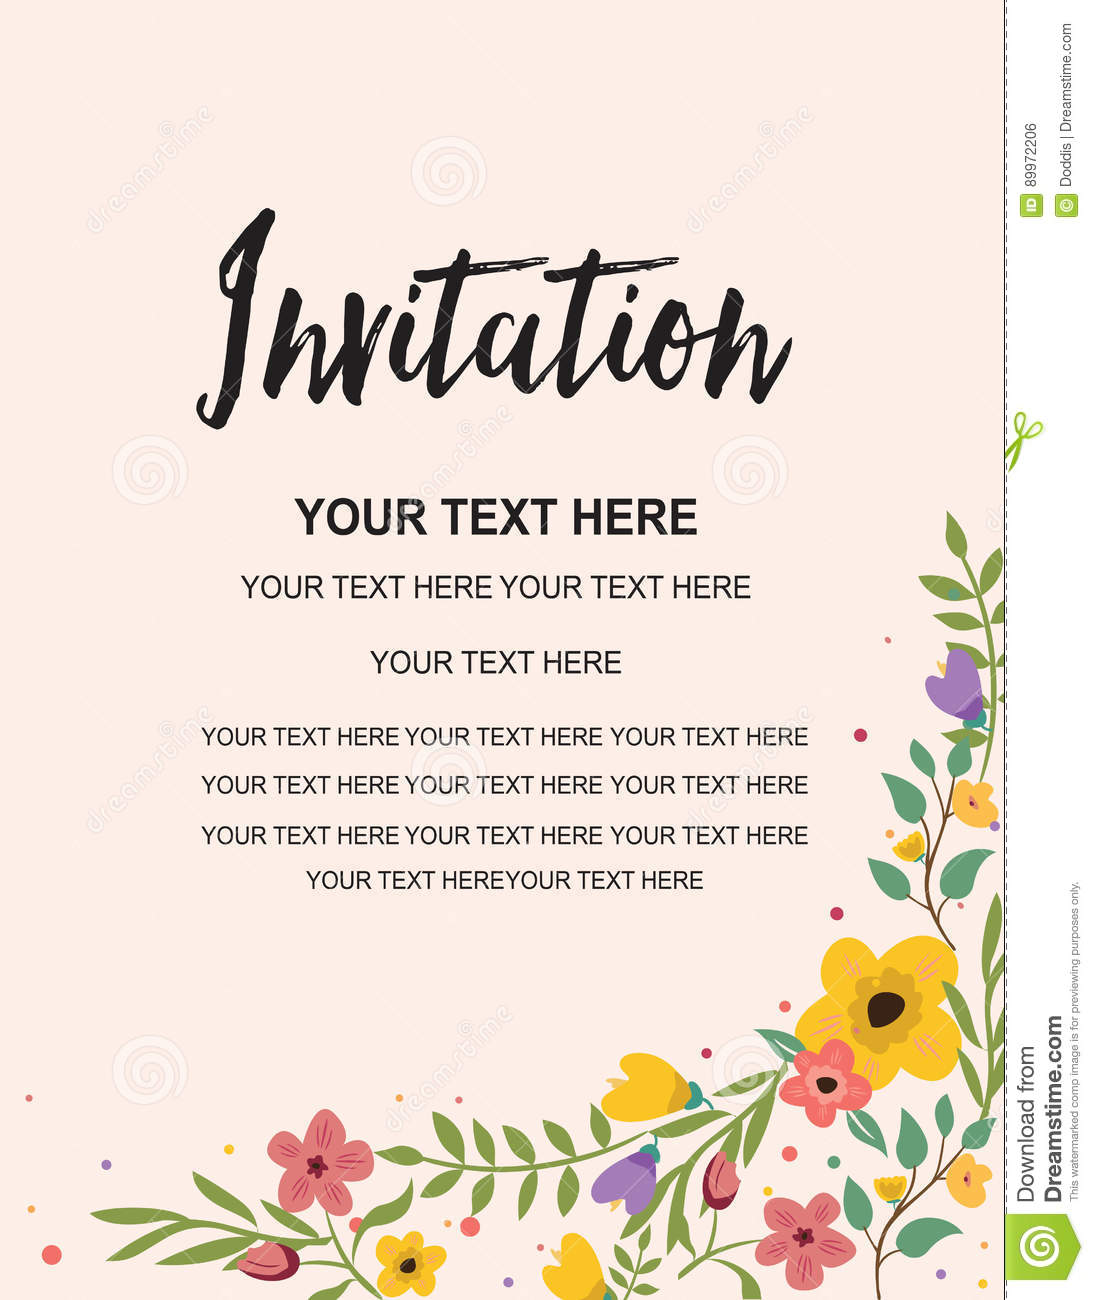 Download Party Invitation Card Template Floral Illustration Vector Creative Design Stock